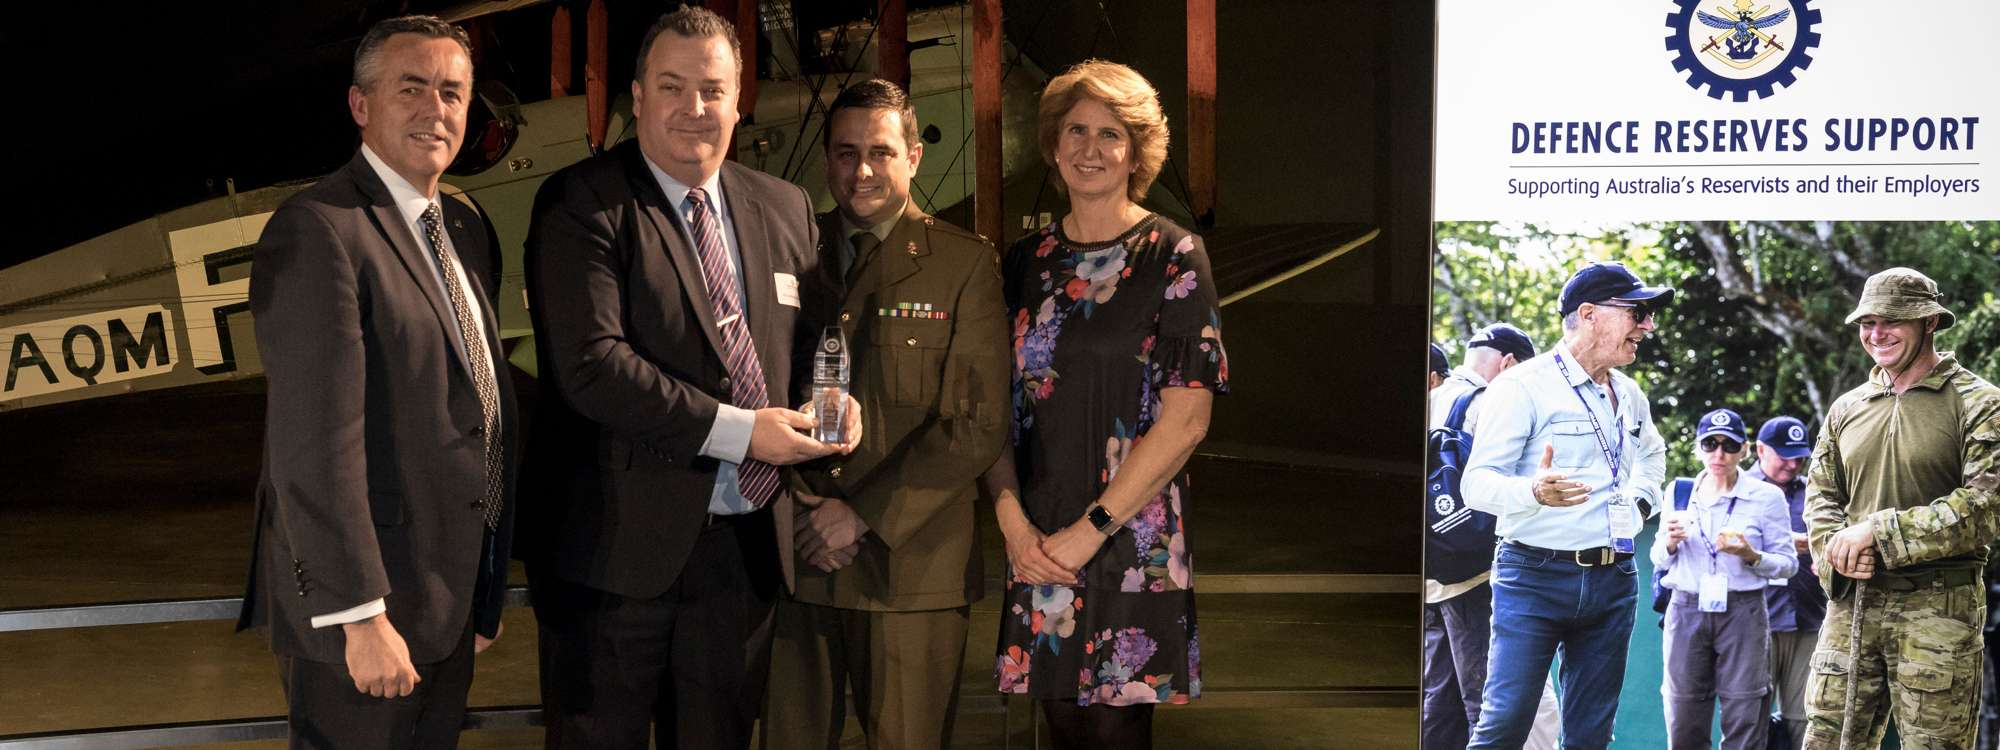 Defence Support Awards image